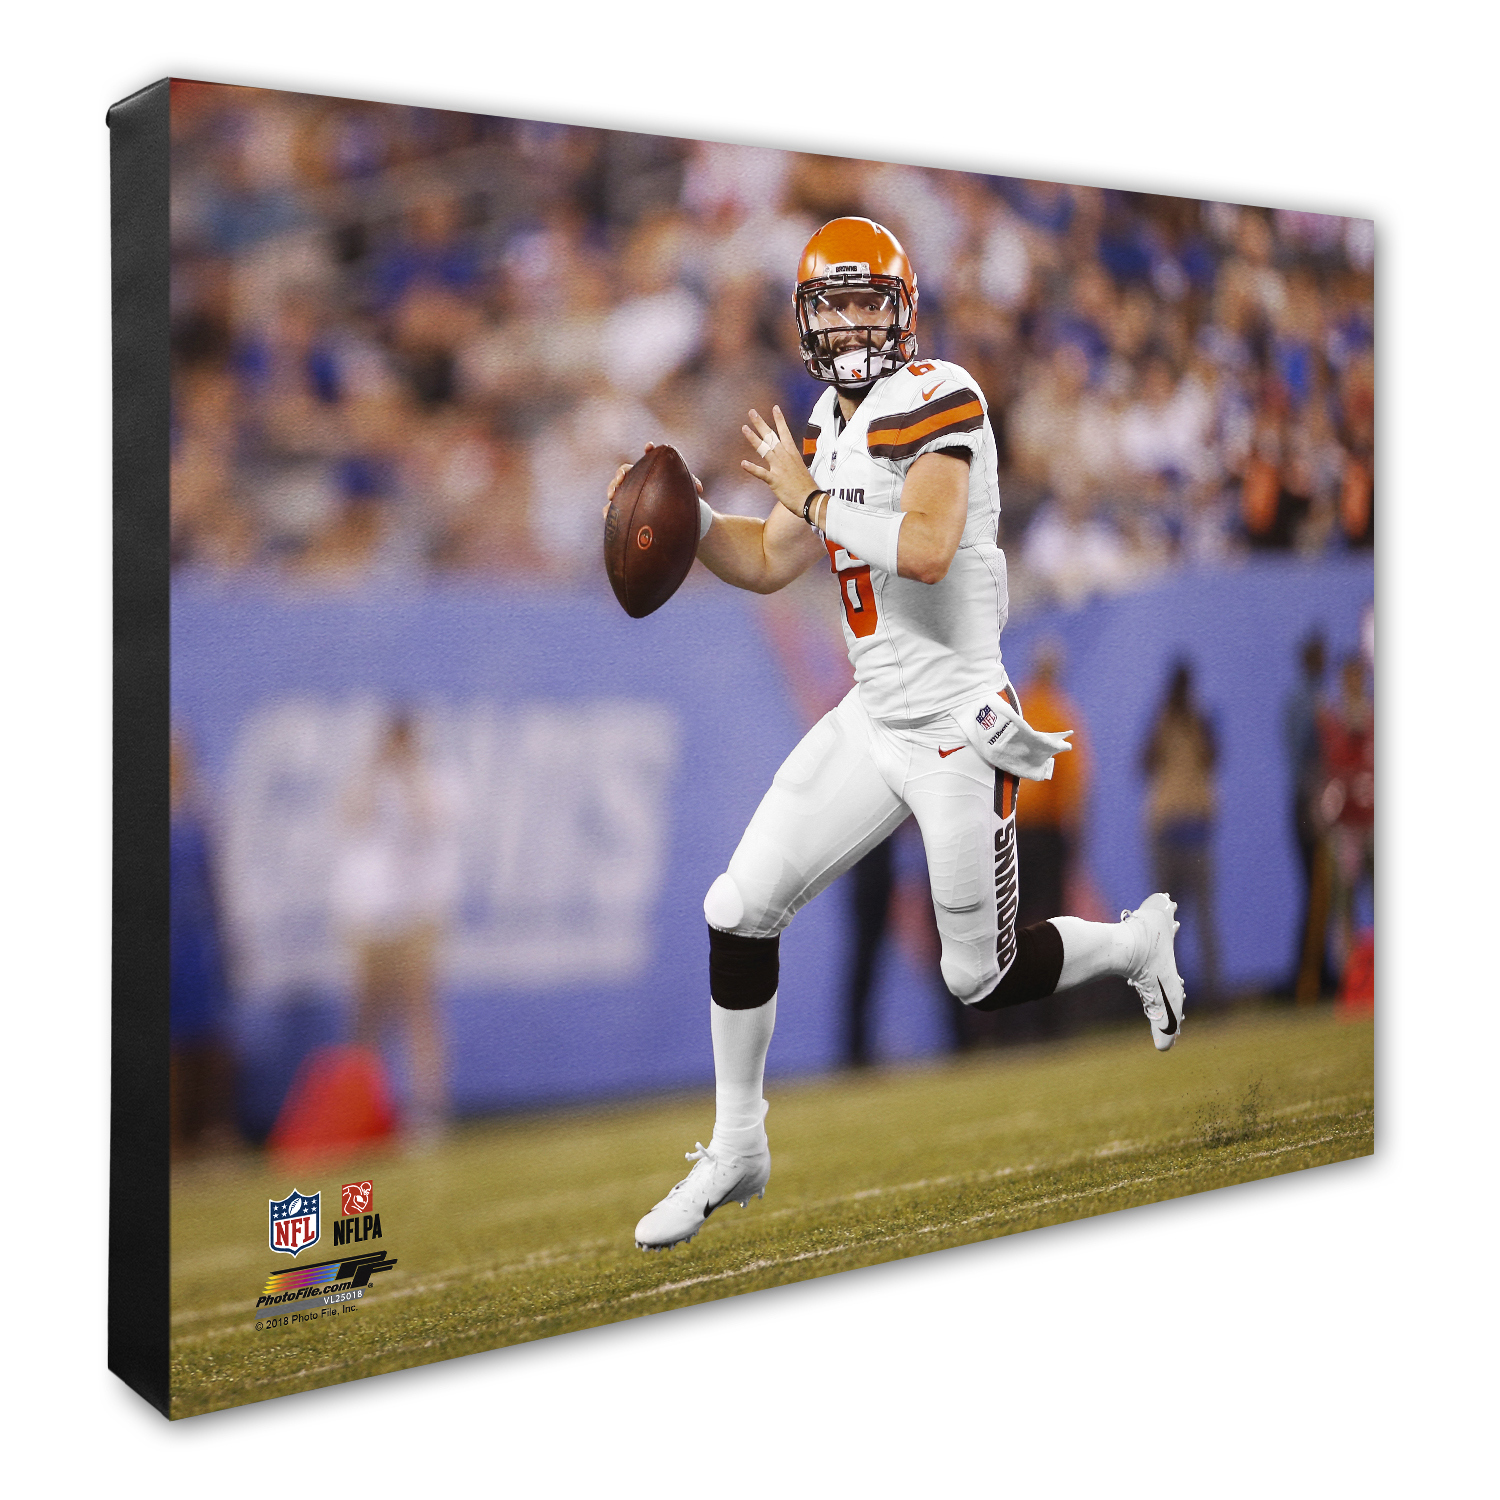 Baker Mayfield Cleveland Browns 16'' x 20'' Player Profile Canvas - No Size